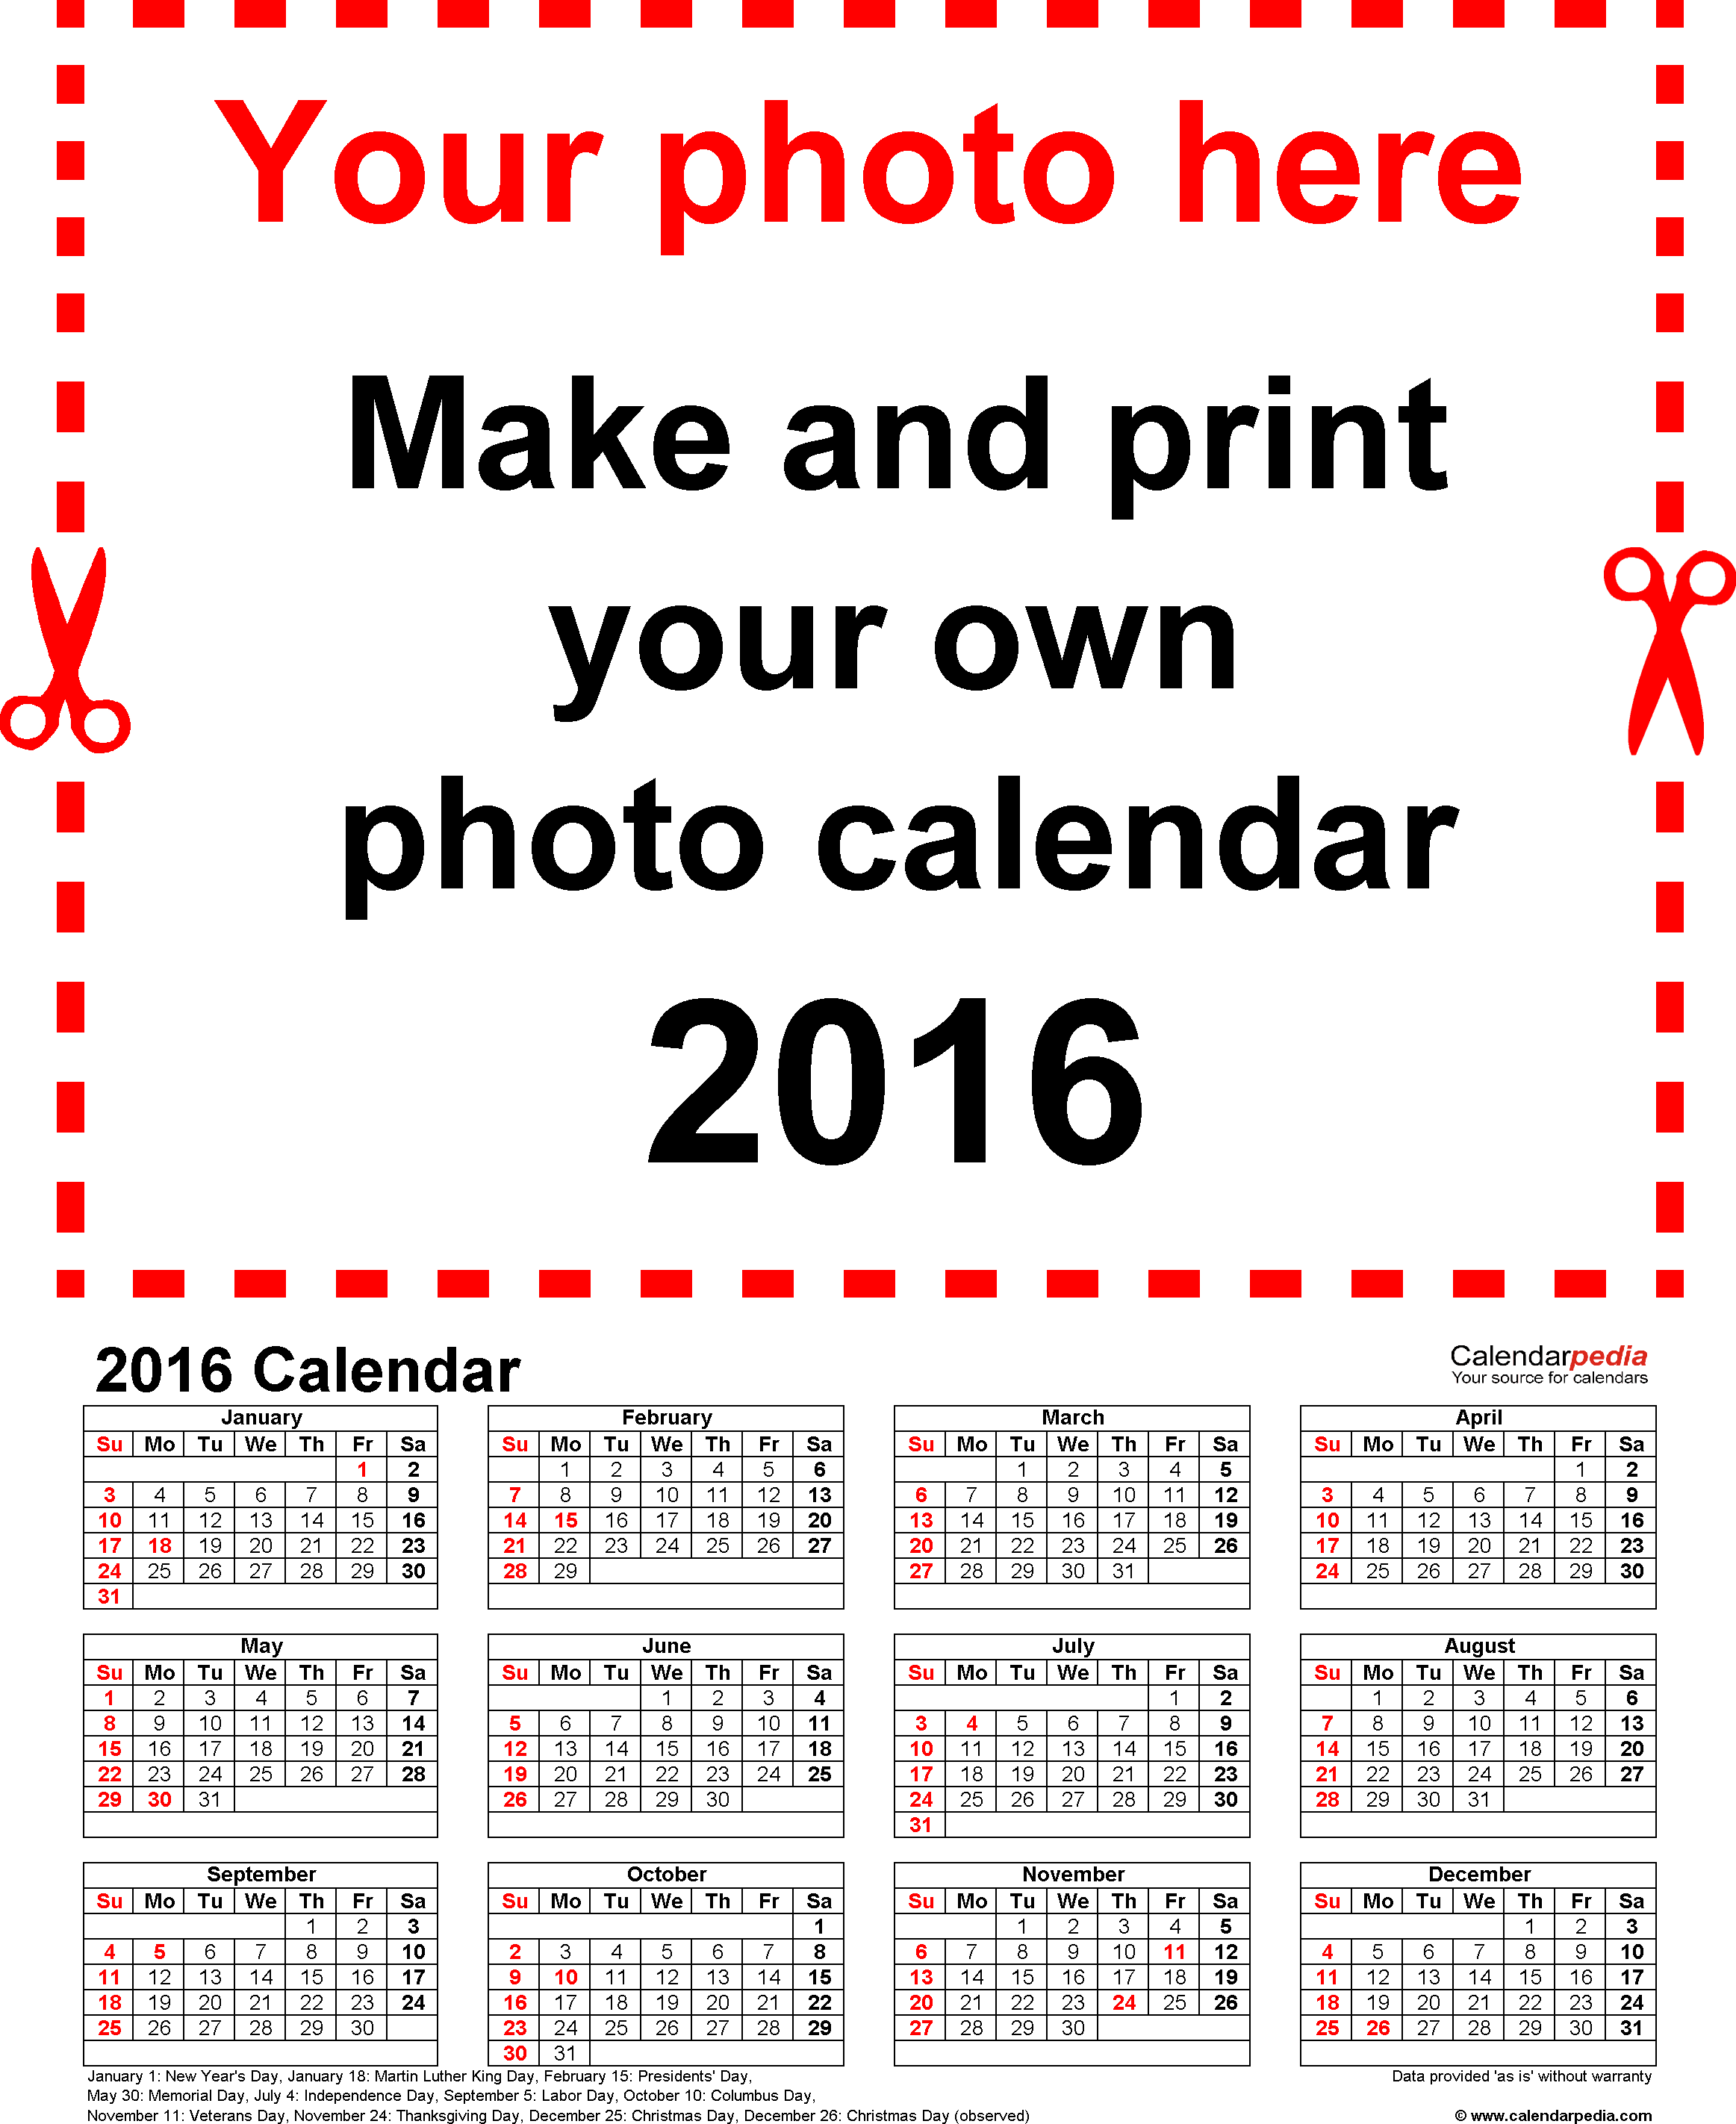 photo calendar 2016 free printable excel templates